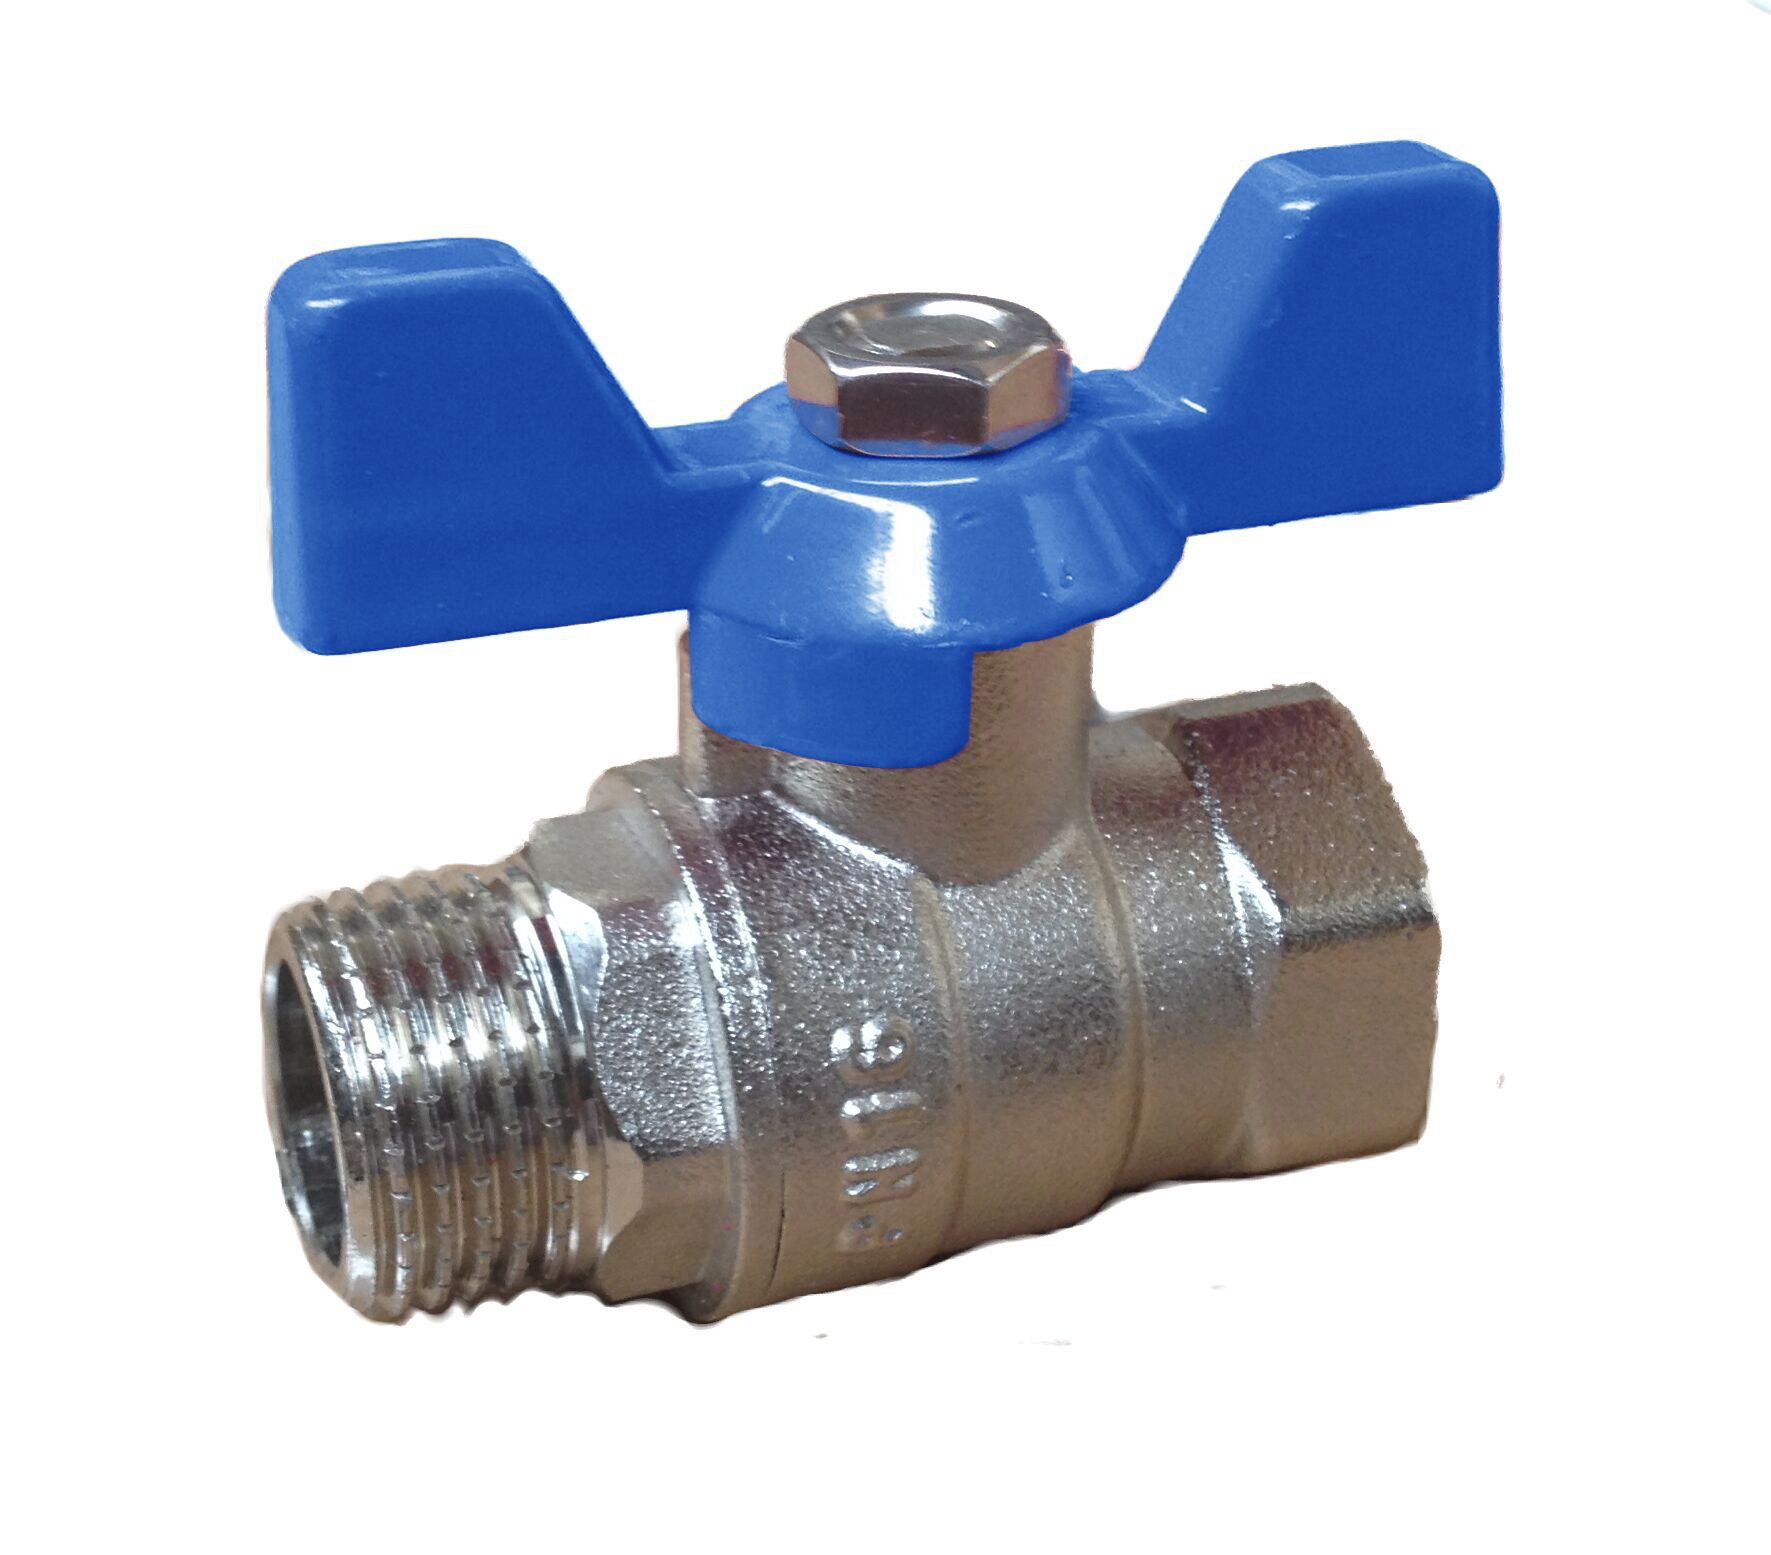 Ball Valve w/ Butterfly 3/4 MxF Blue